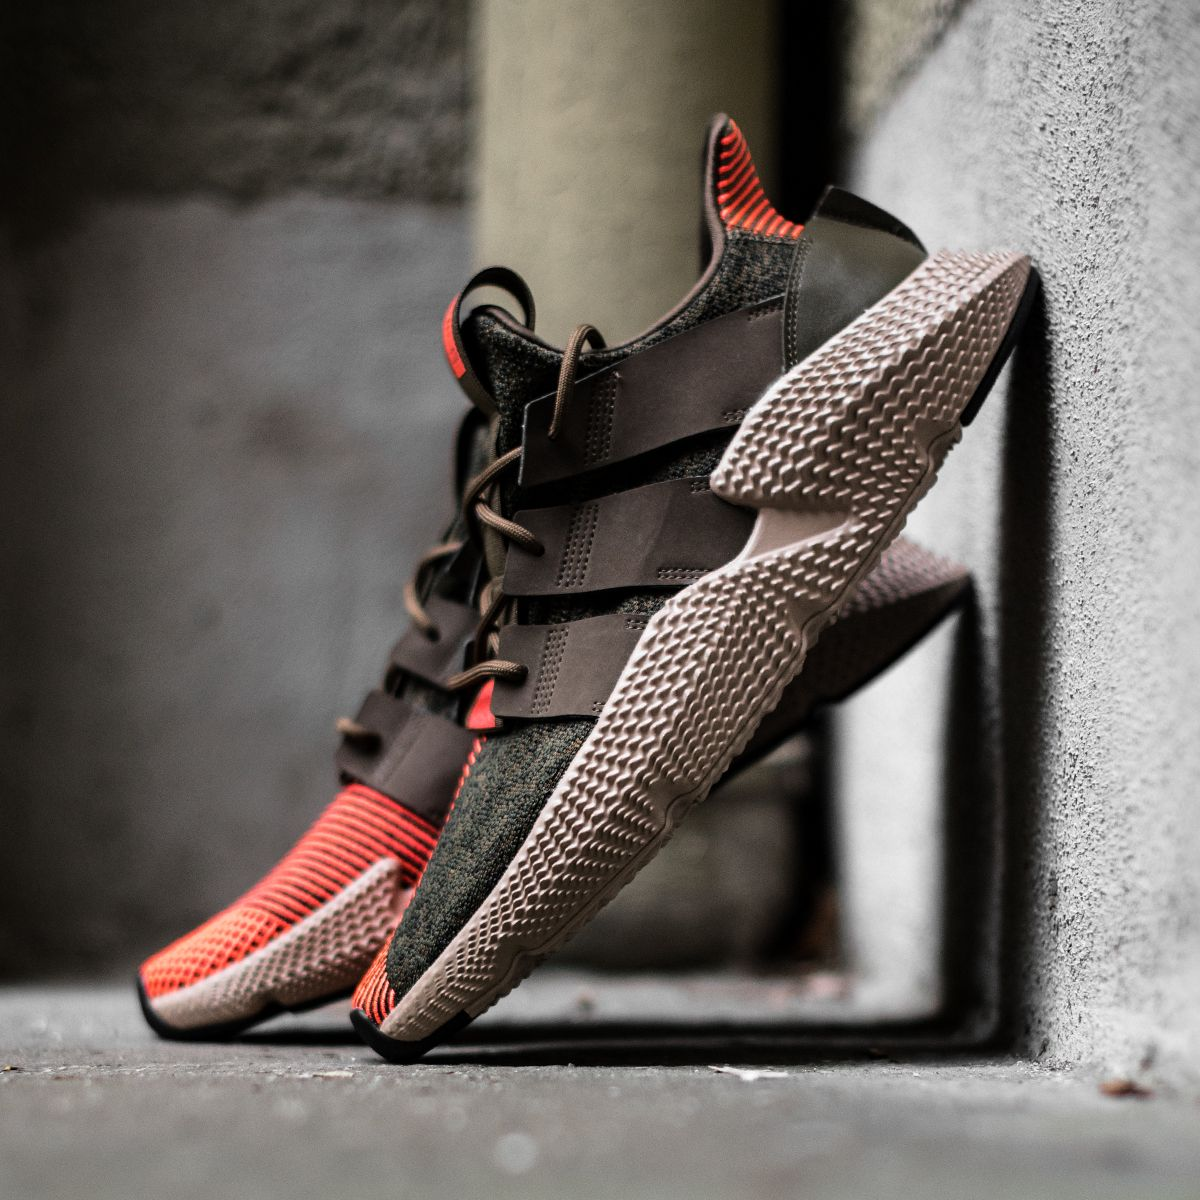 adidas chaussure femmes prophere